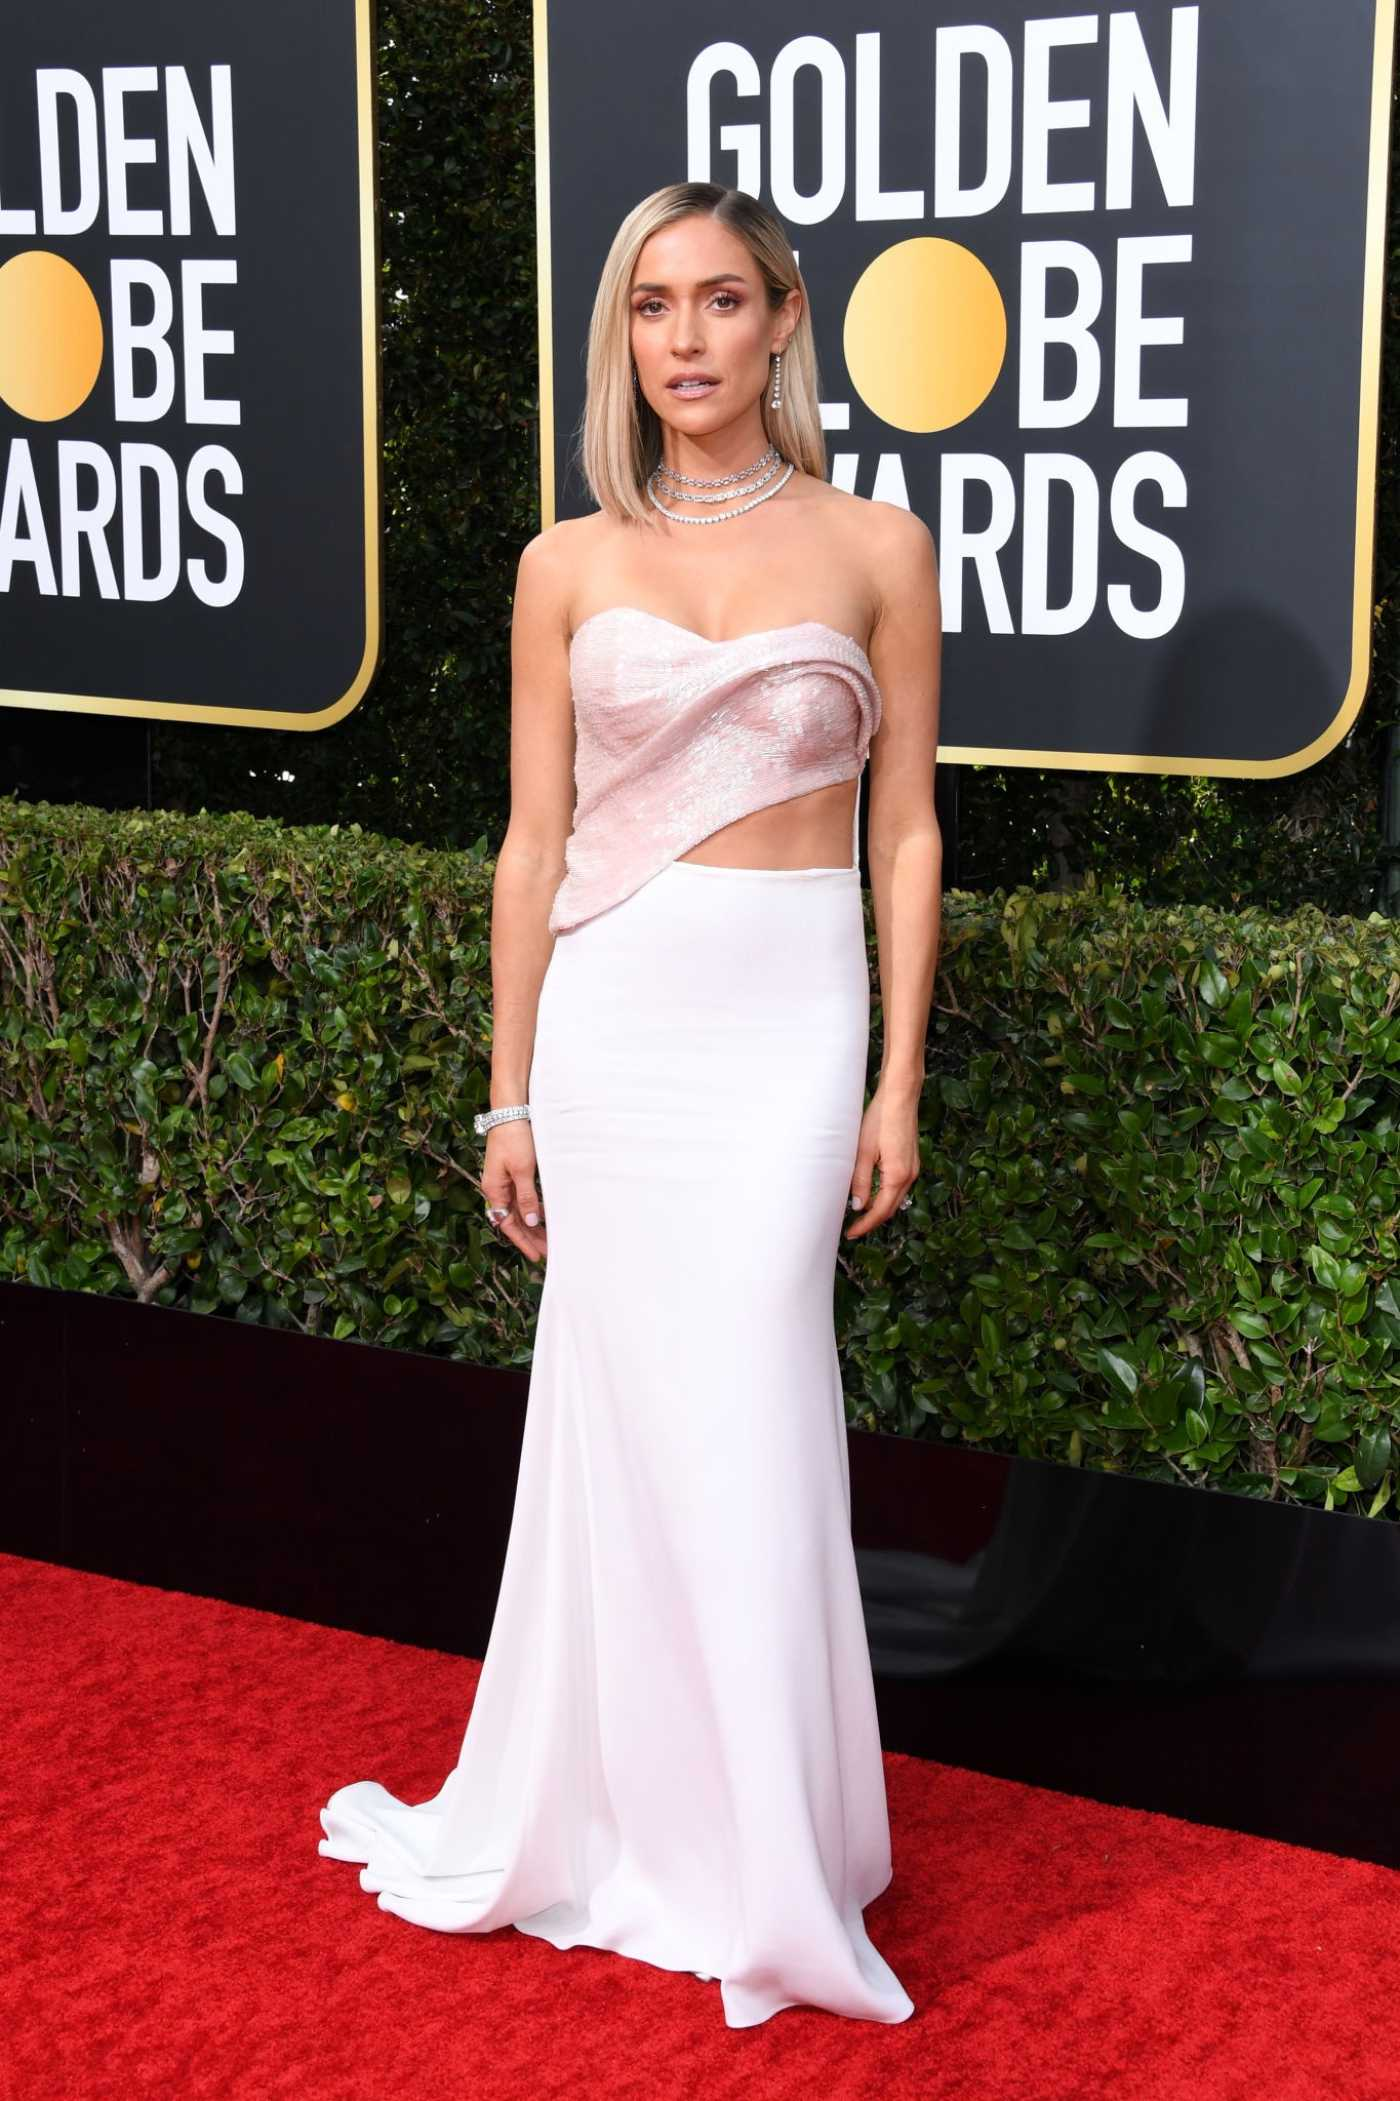 Kristin Cavallari Attends the 77th Annual Golden Globe Awards at the Beverly Hilton Hotel in Beverly Hills 01/05/2020